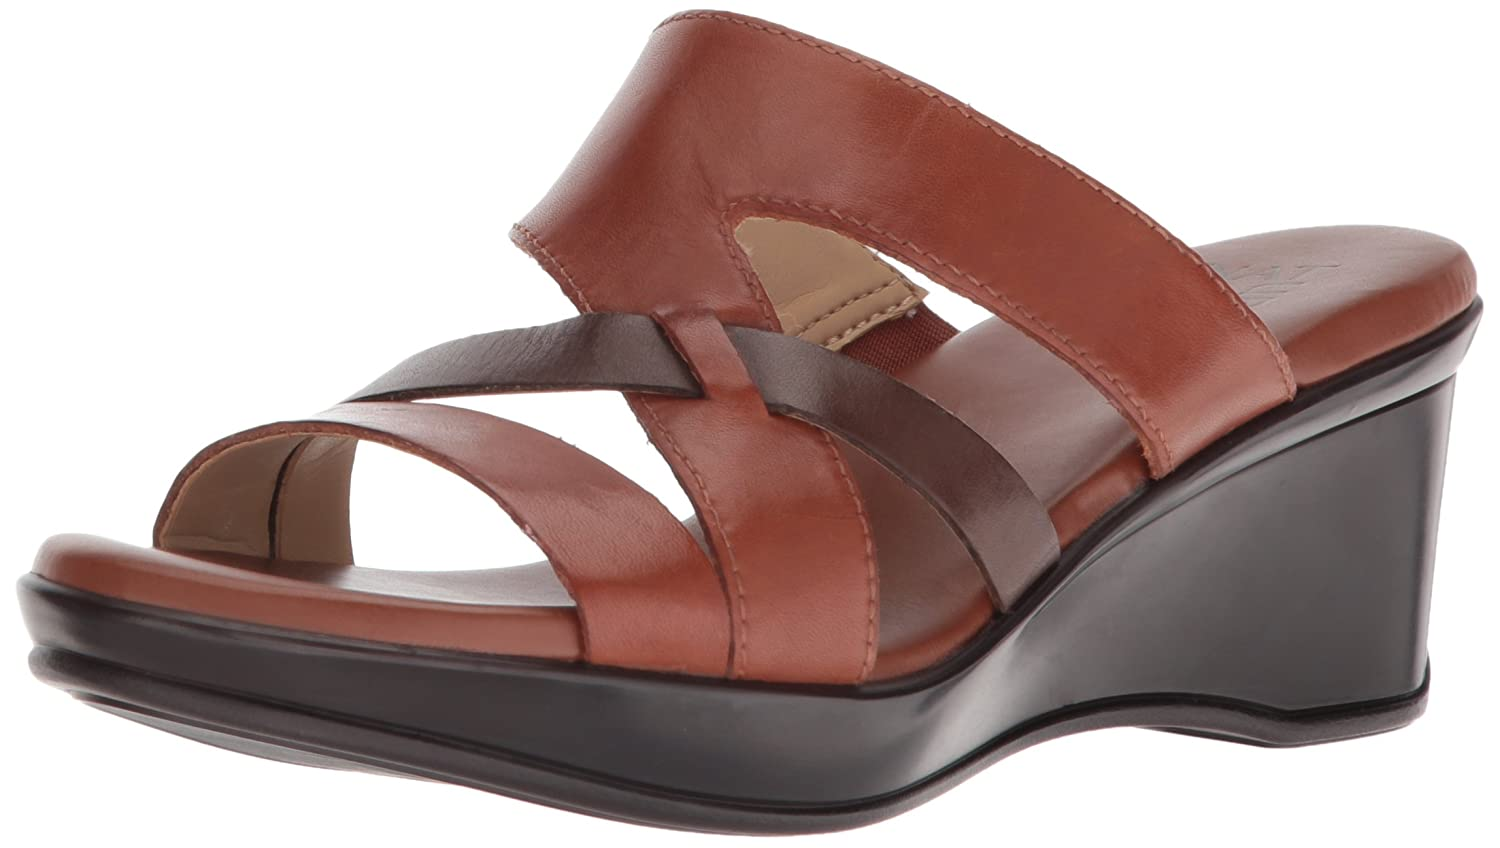 b6a055b5b373 Amazon.com  Naturalizer Women s Vivy Wedge Sandal  Shoes